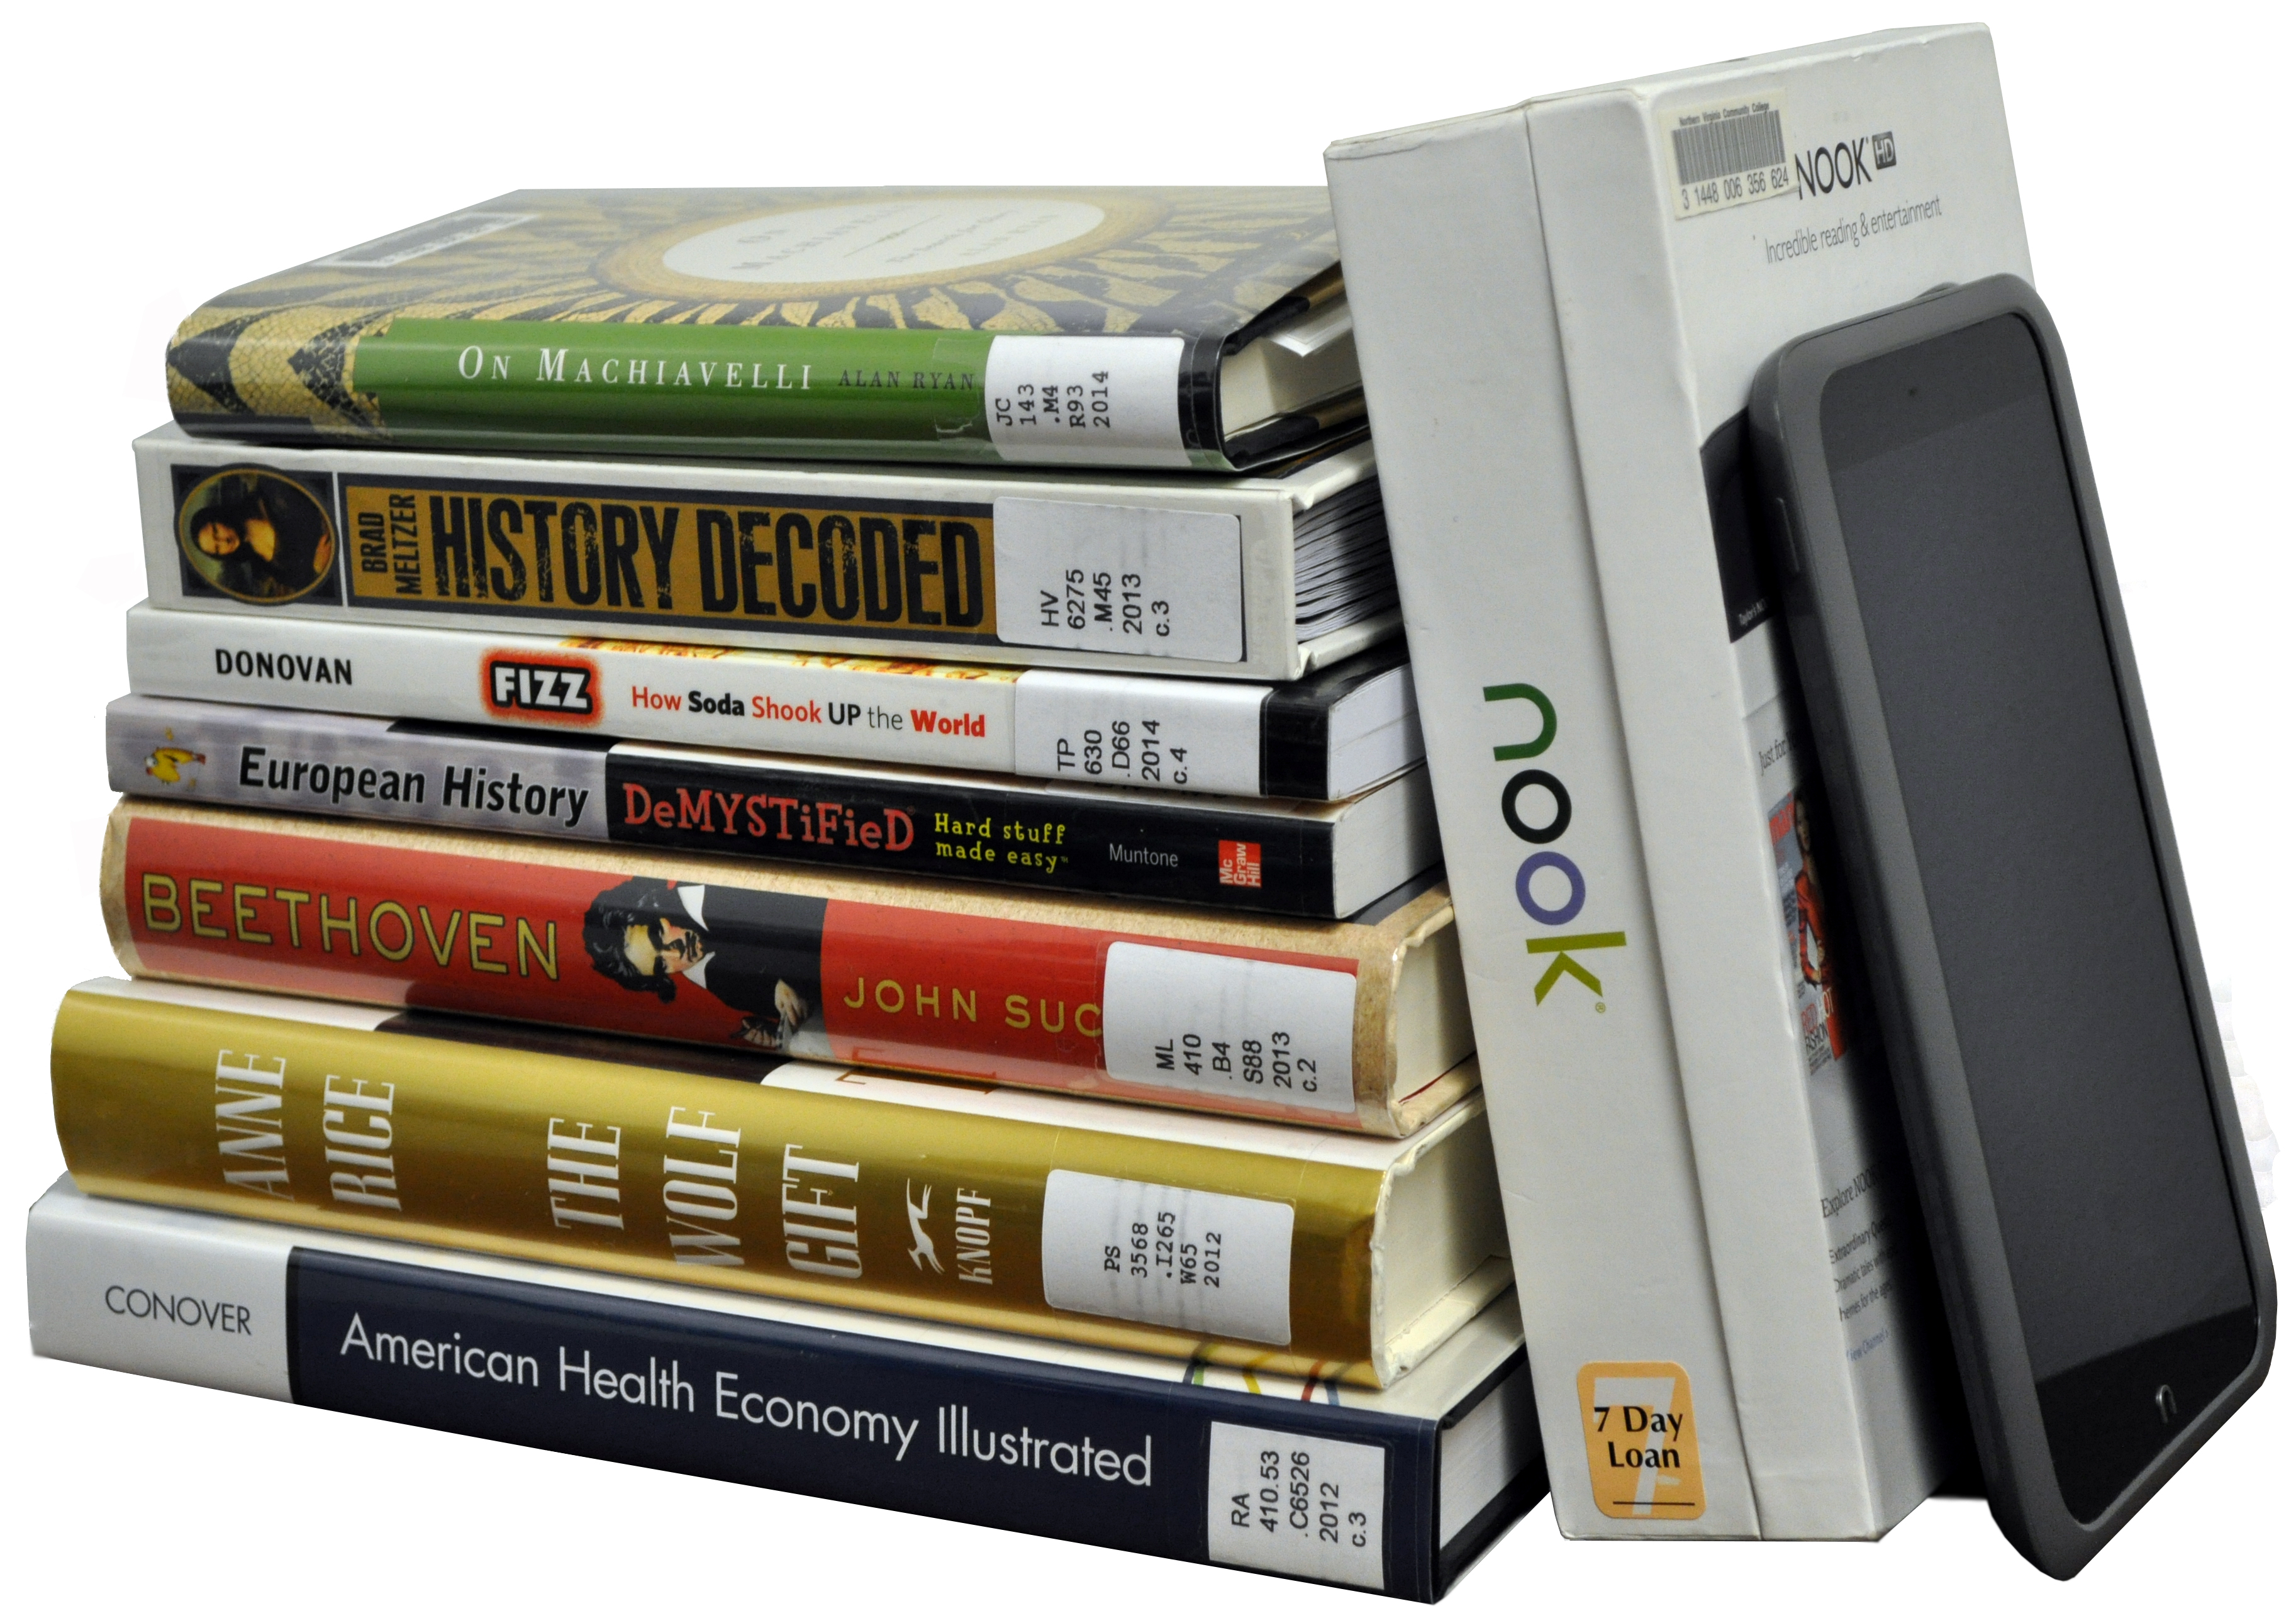 Image of books and ereader